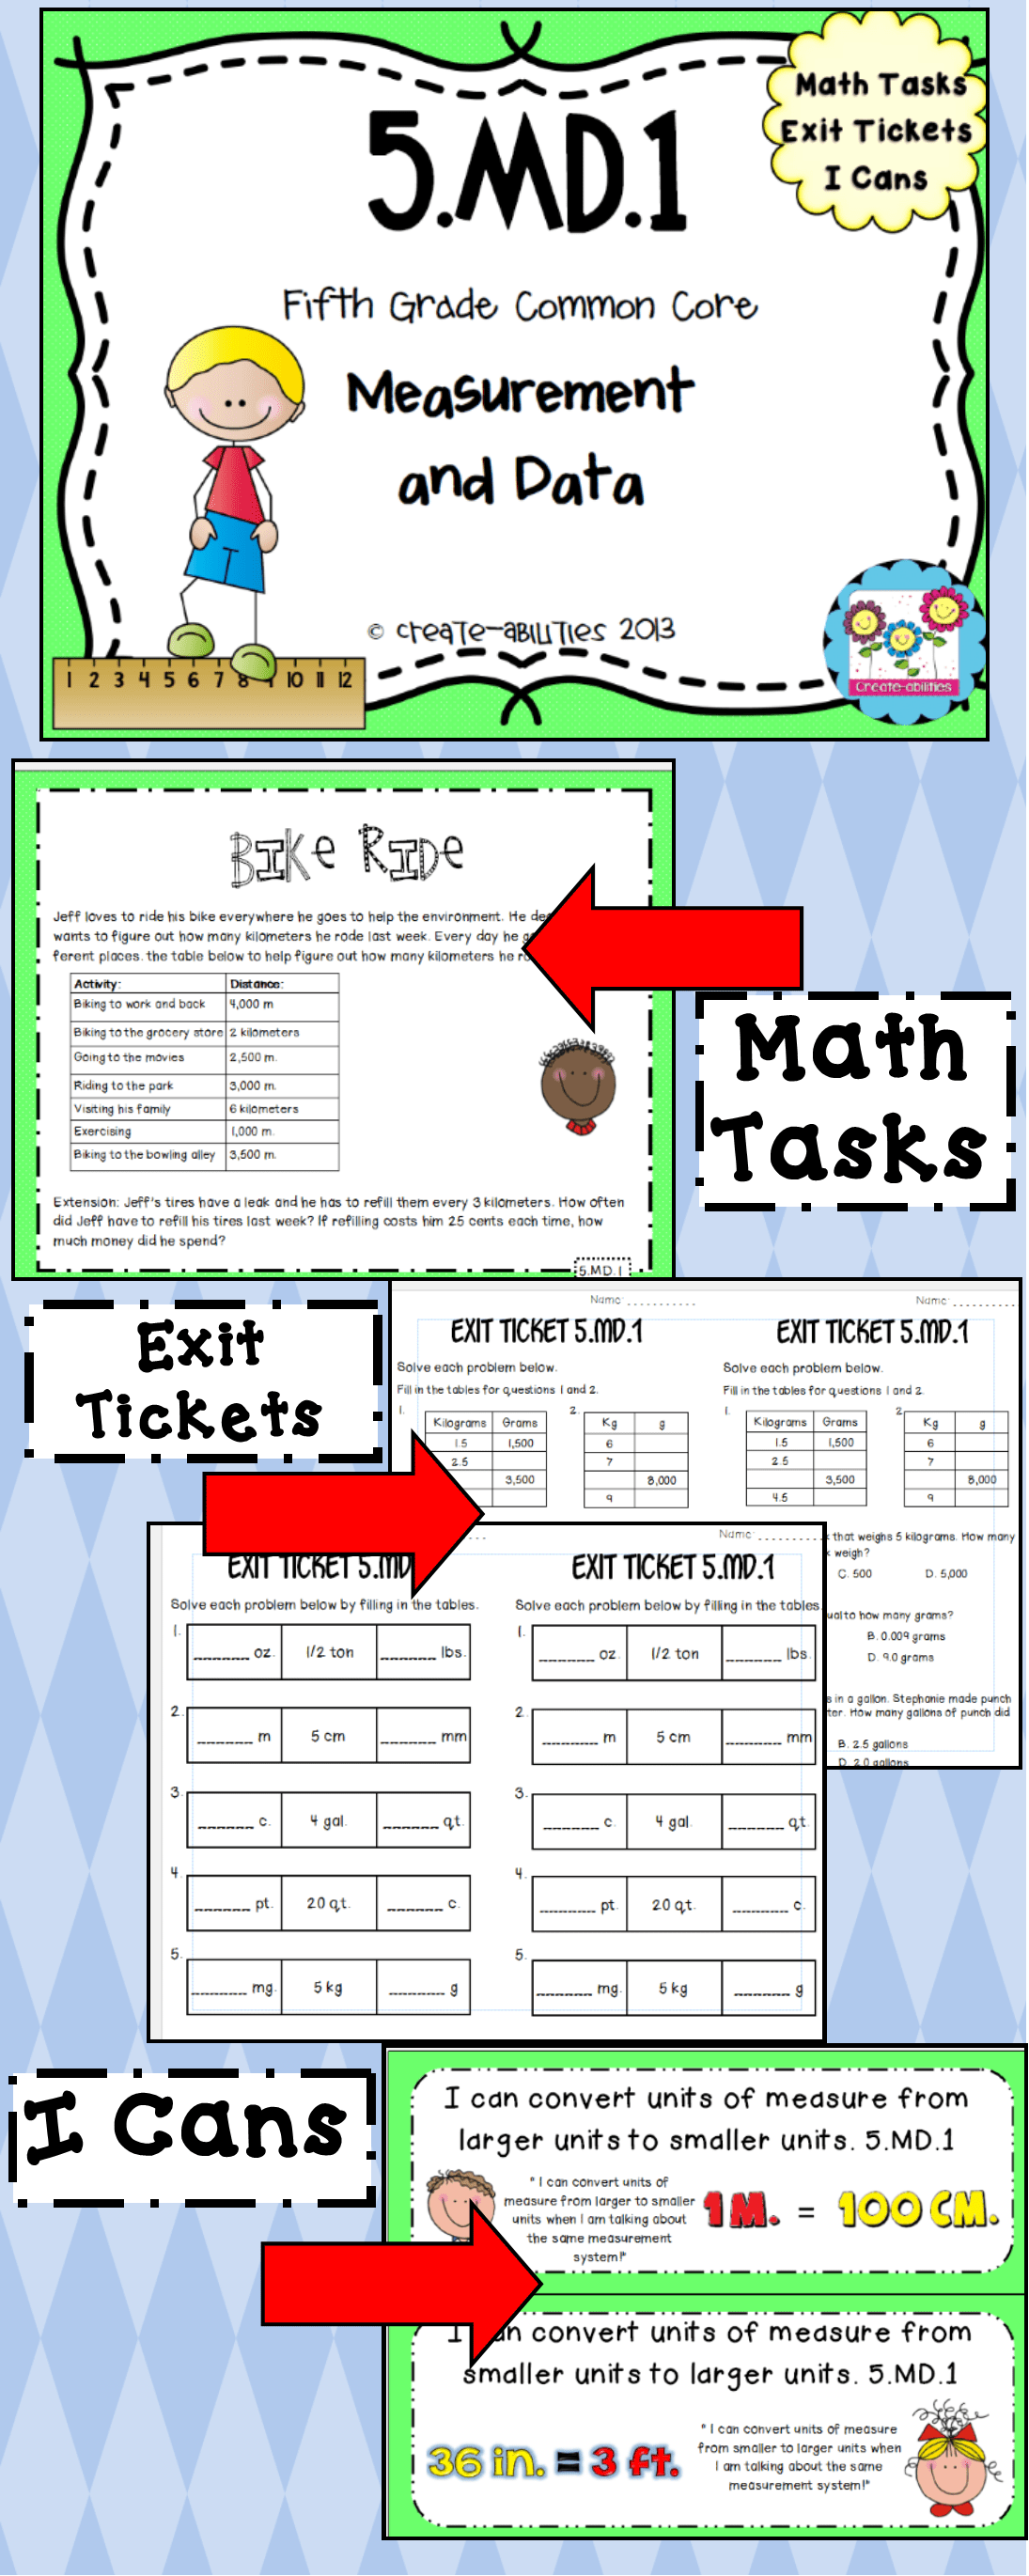 5 Md 1 Converting Units Of Measure Math Tasks Exit